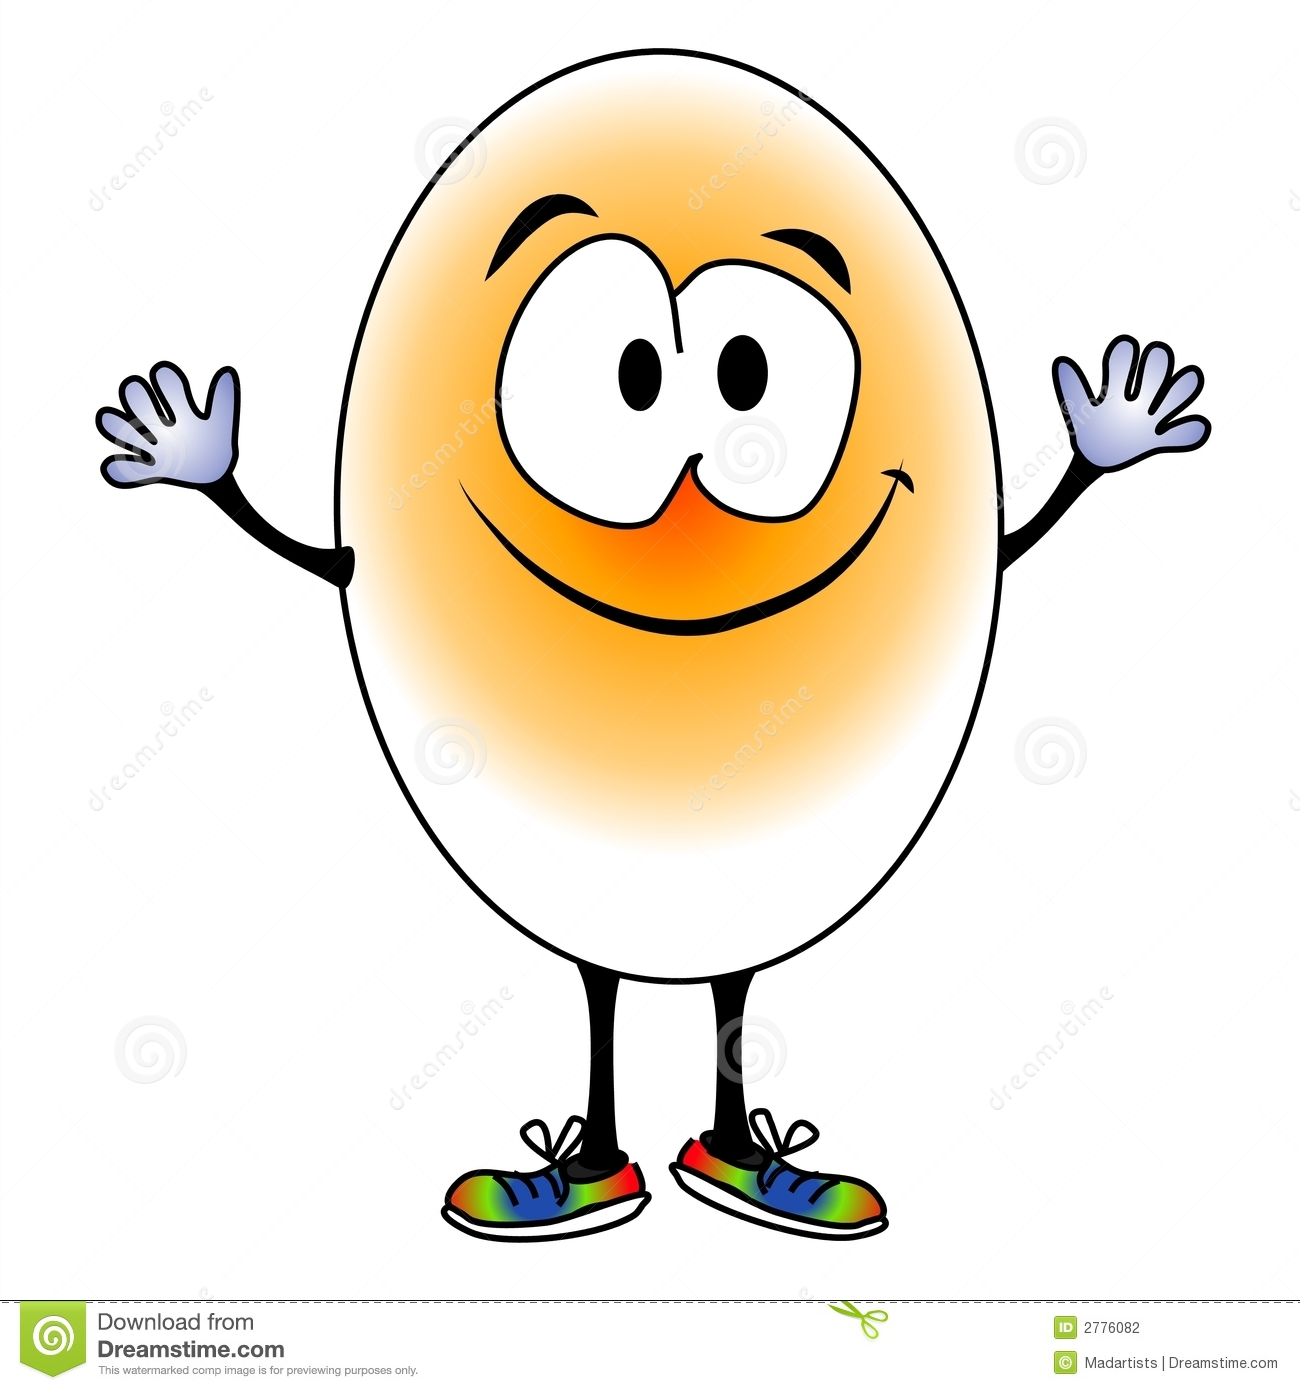 ... of a smiling egg with big eyes, hands and rainbow colored shoes